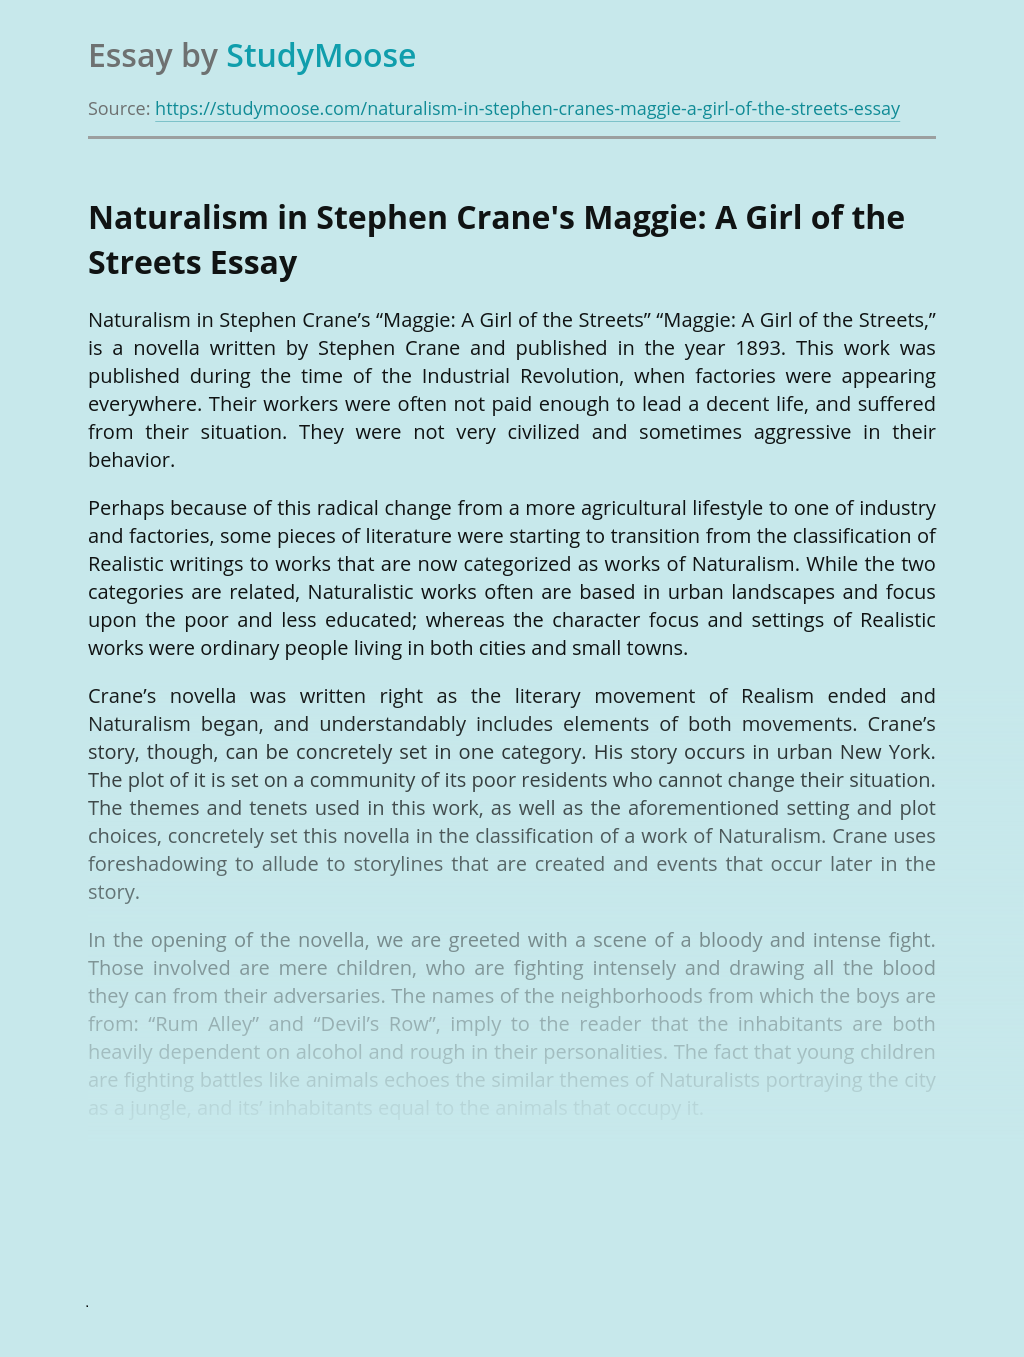 Naturalism in Stephen Crane's Maggie: A Girl of the Streets